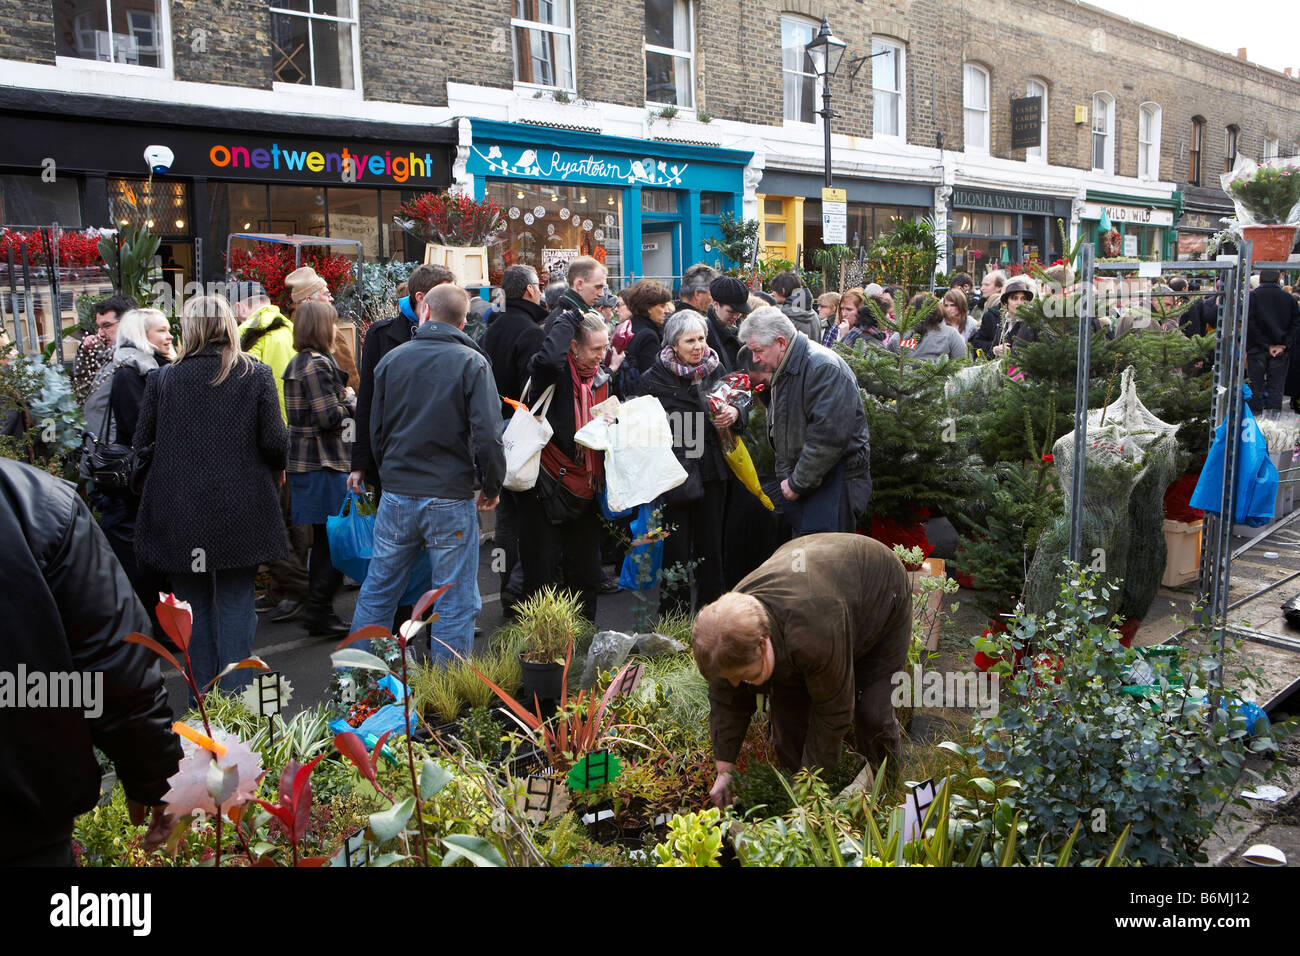 COLUMBIA ROAD MARKET LONDRES EAST END Photo Stock